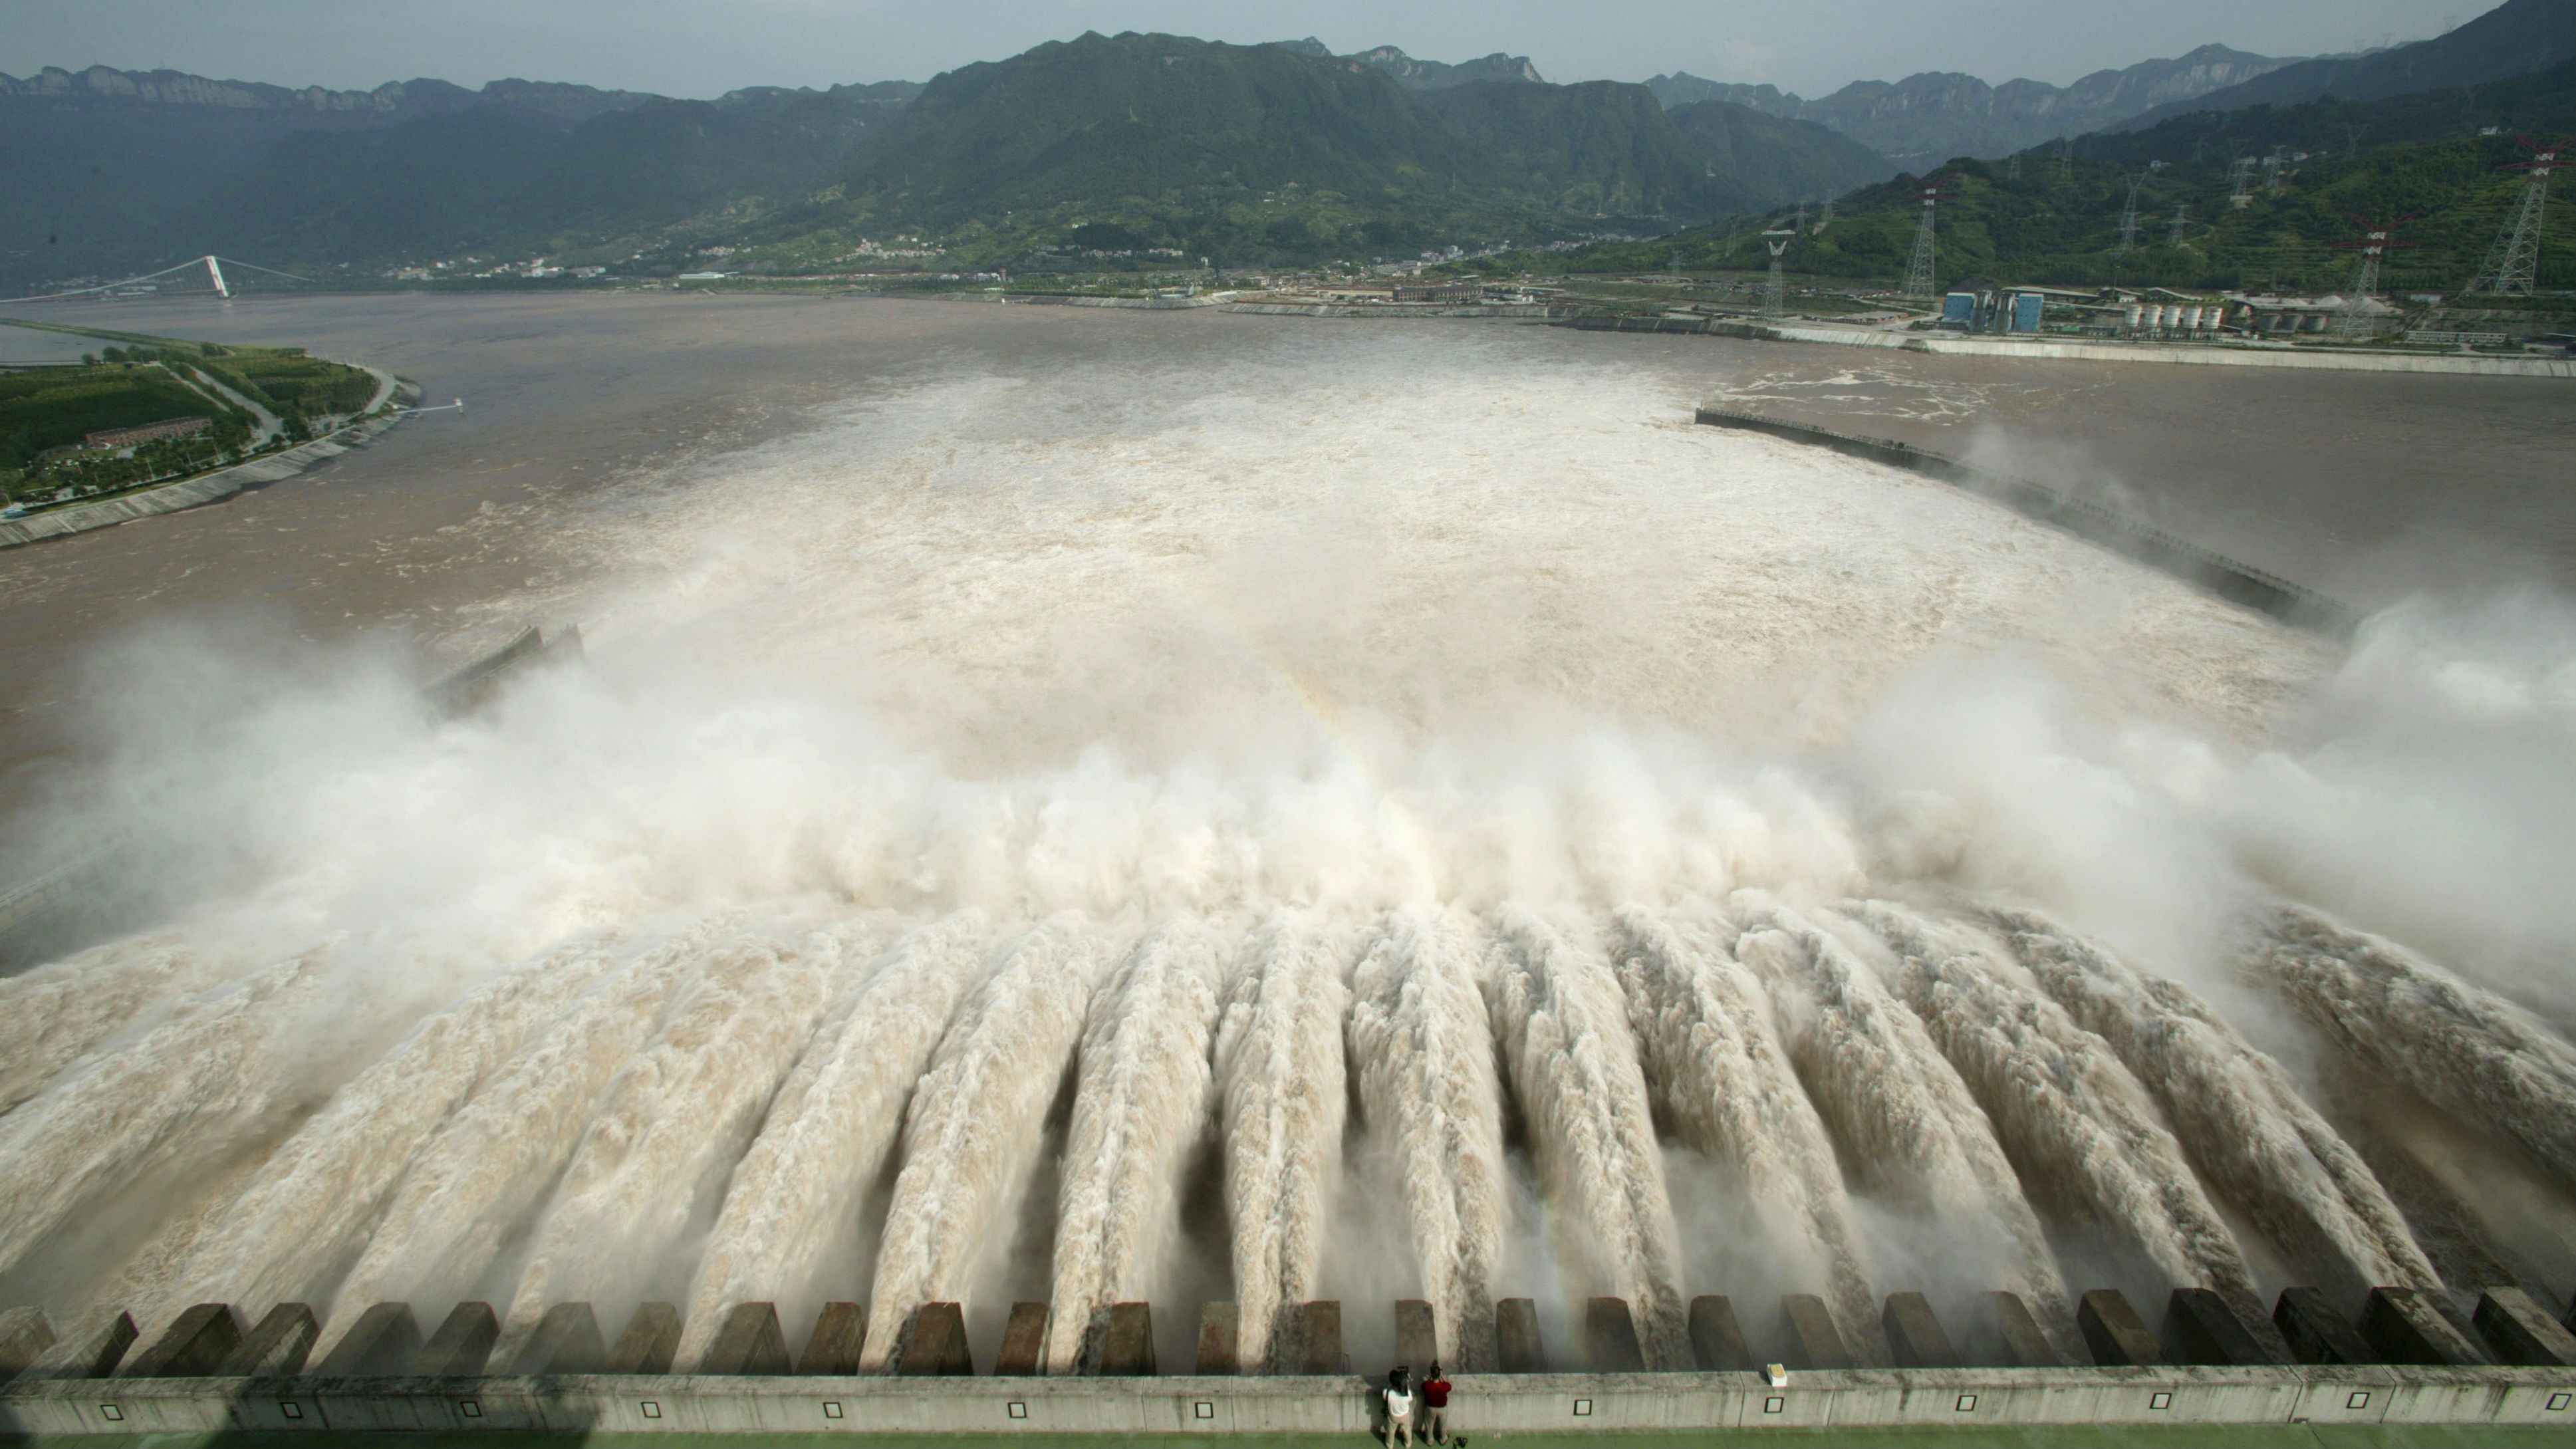 A view of water gushing into the Yangtze River in China.